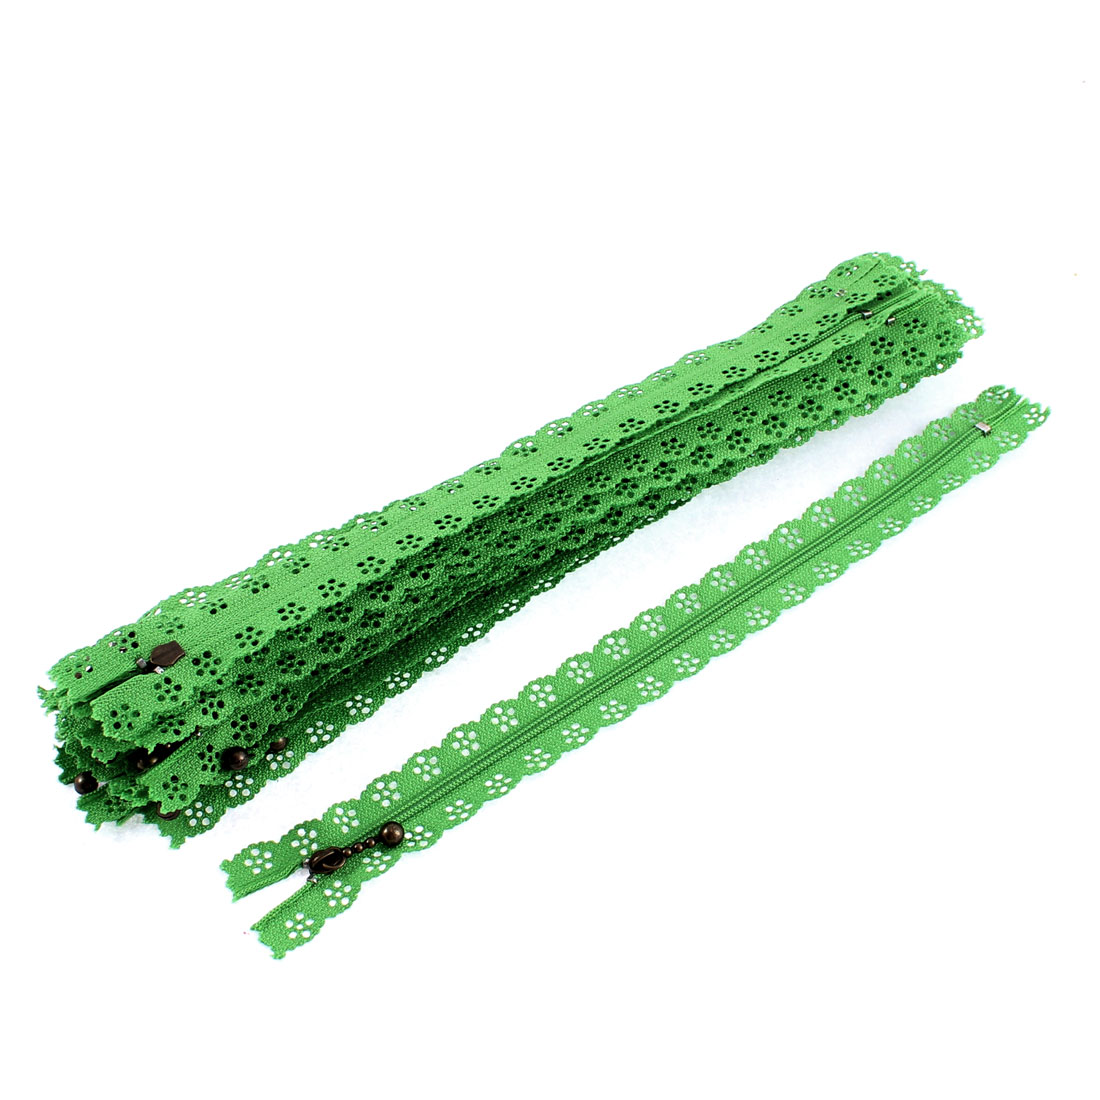 Green Flower Floral Lace Closed End Zip Zippers 20 Pcs